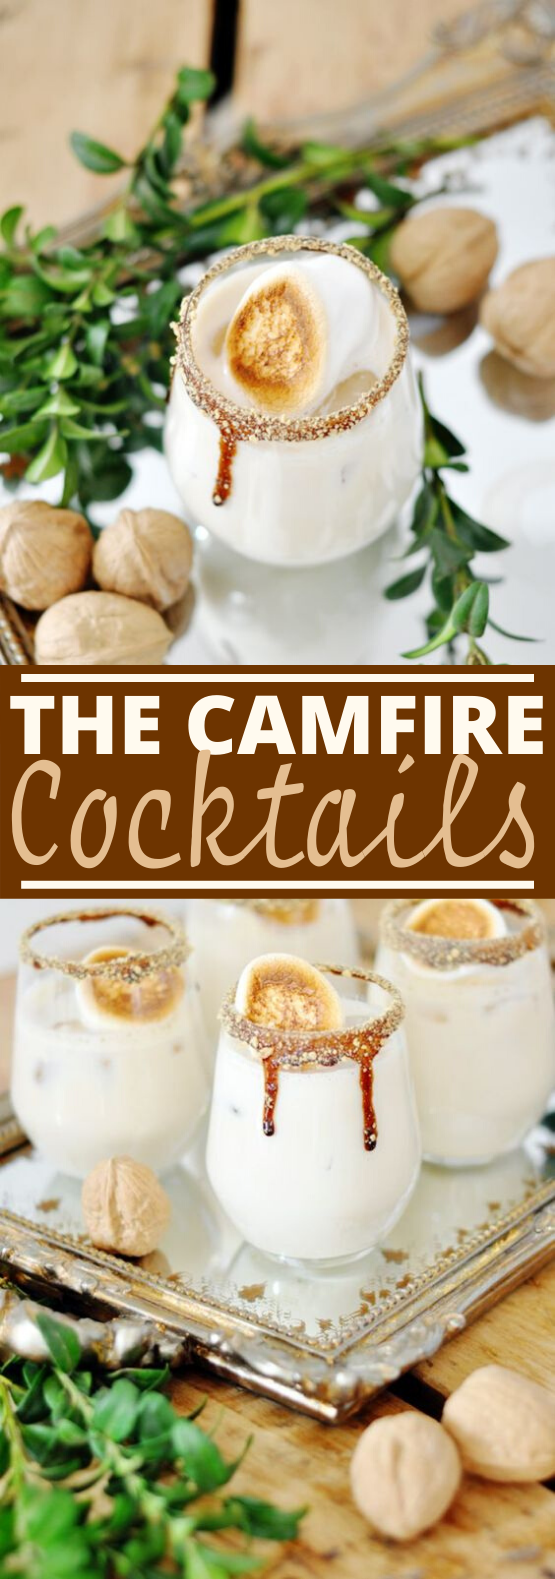 The Campfire Cocktail #drinks #cocktails #alcohol #milk #winter